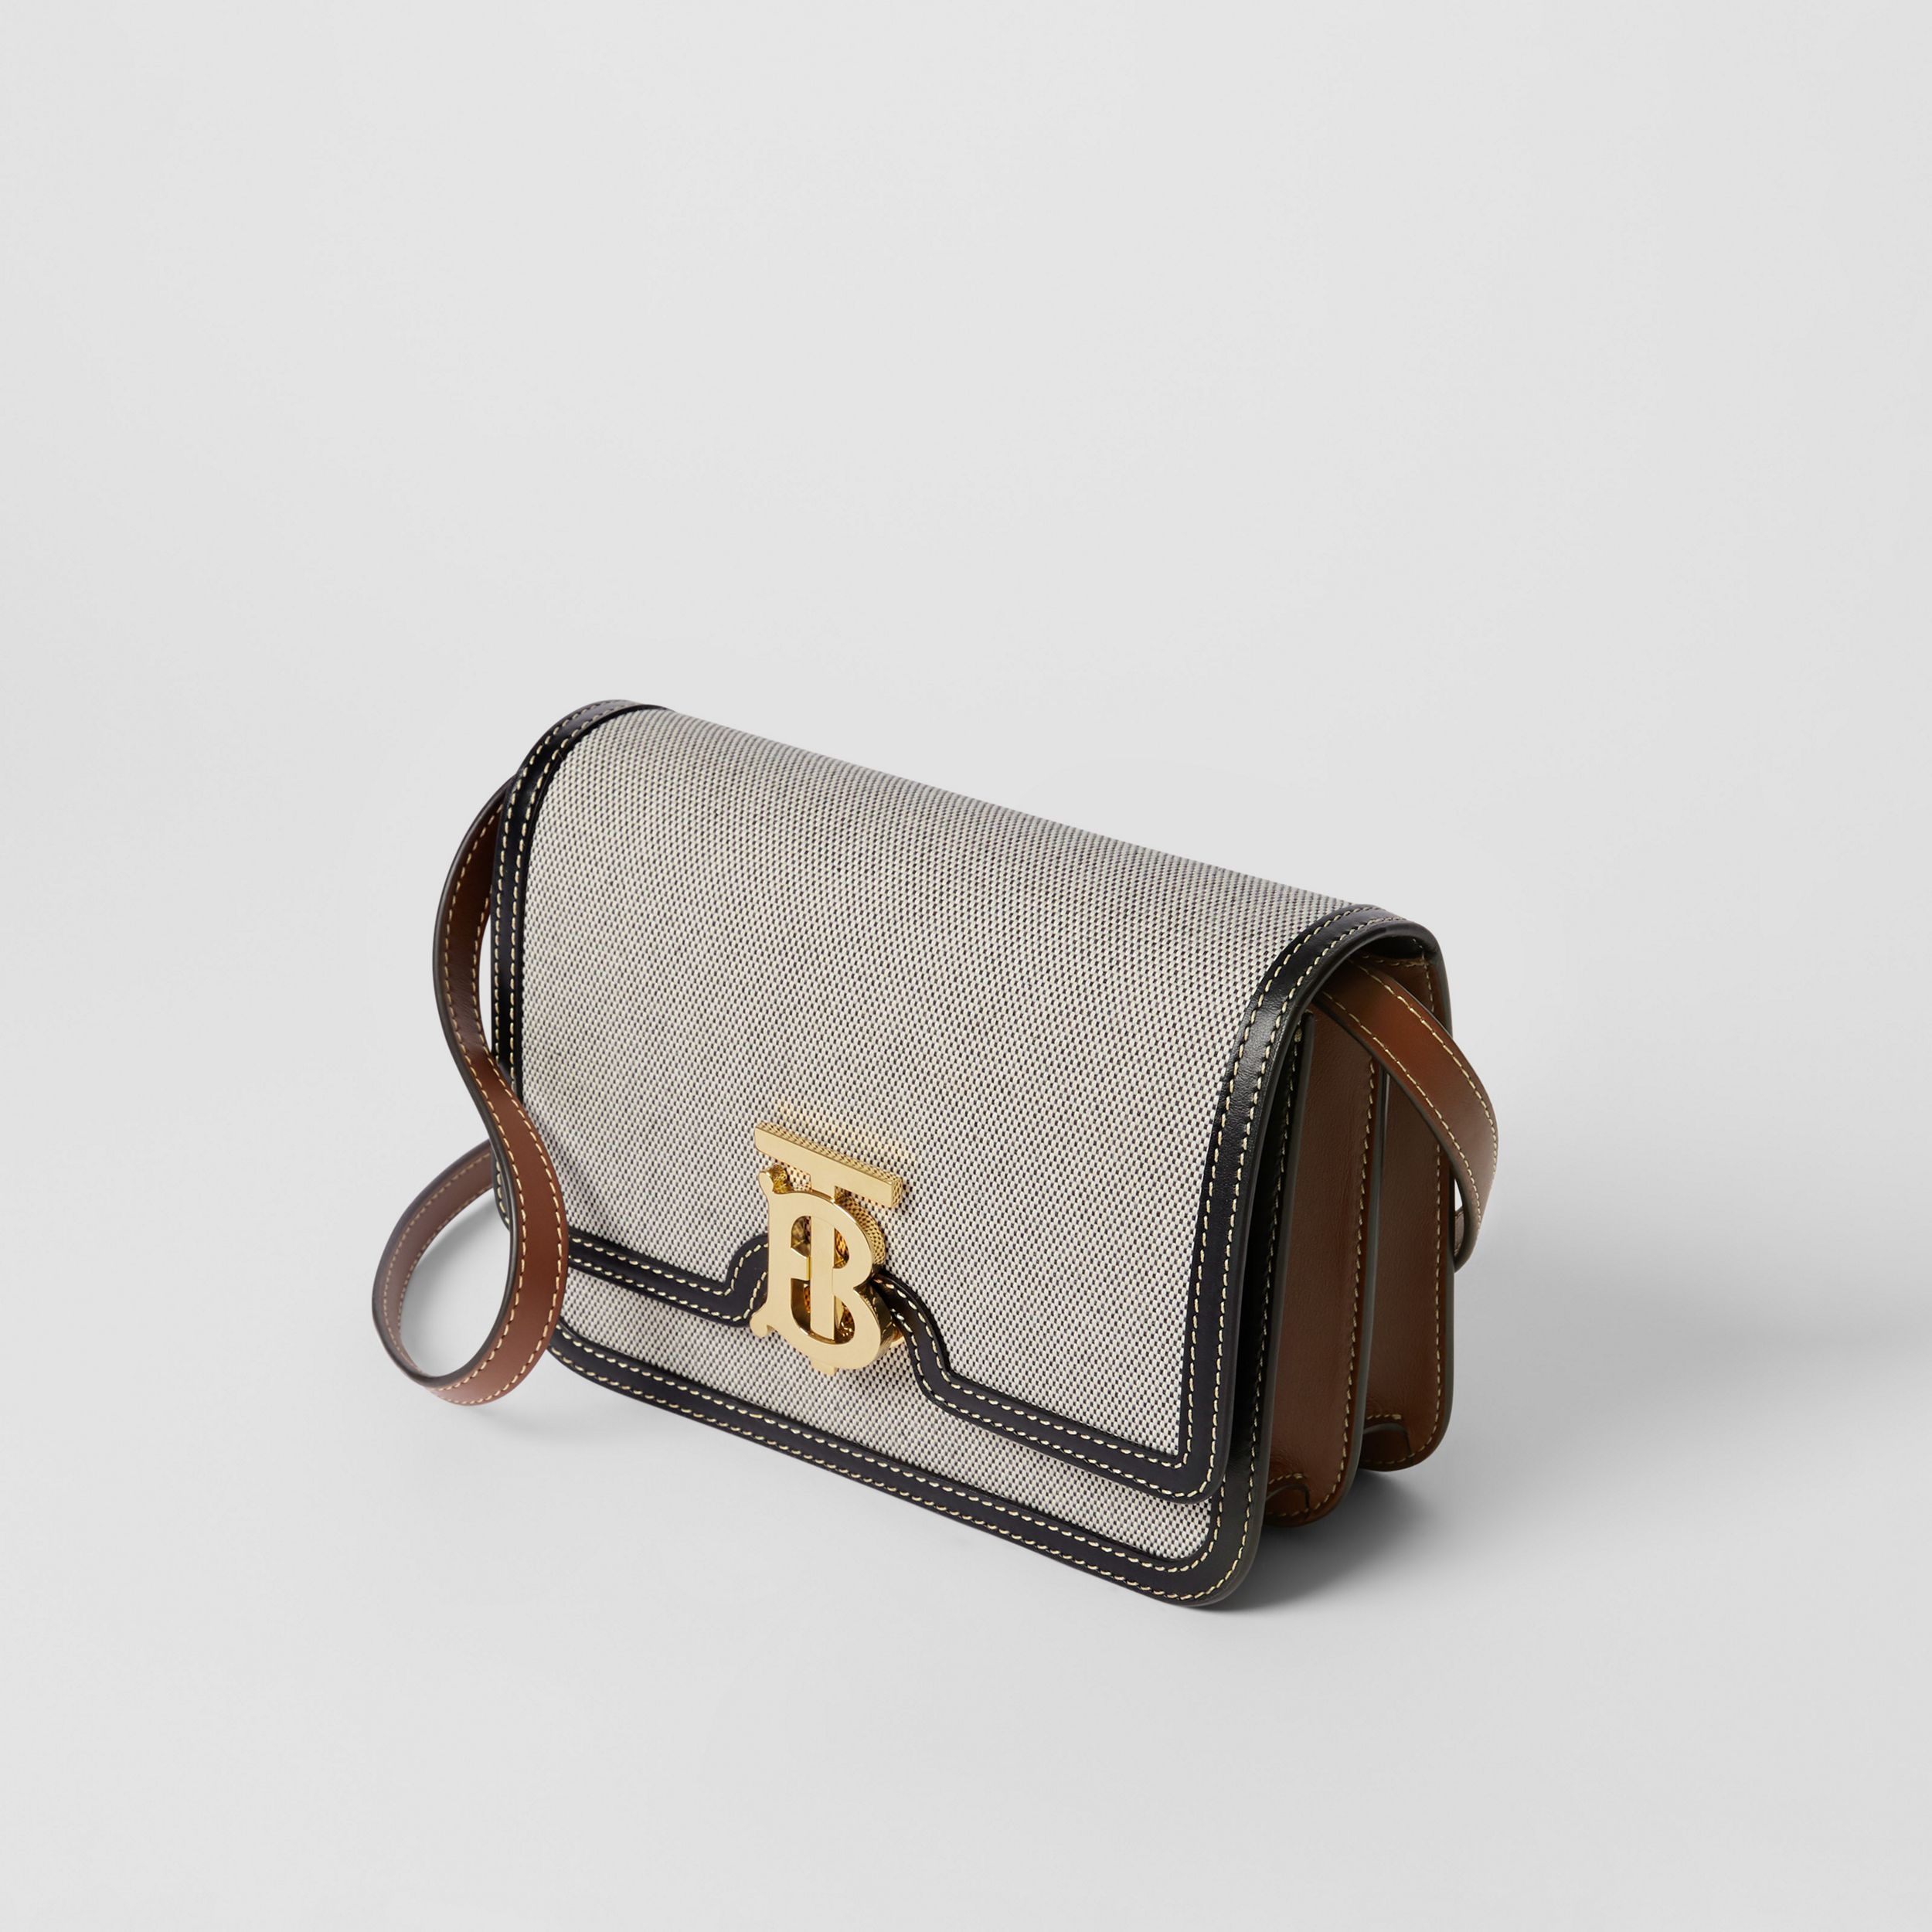 Small Tri-tone Canvas and Leather TB Bag in Black/tan - Women | Burberry Australia - 4